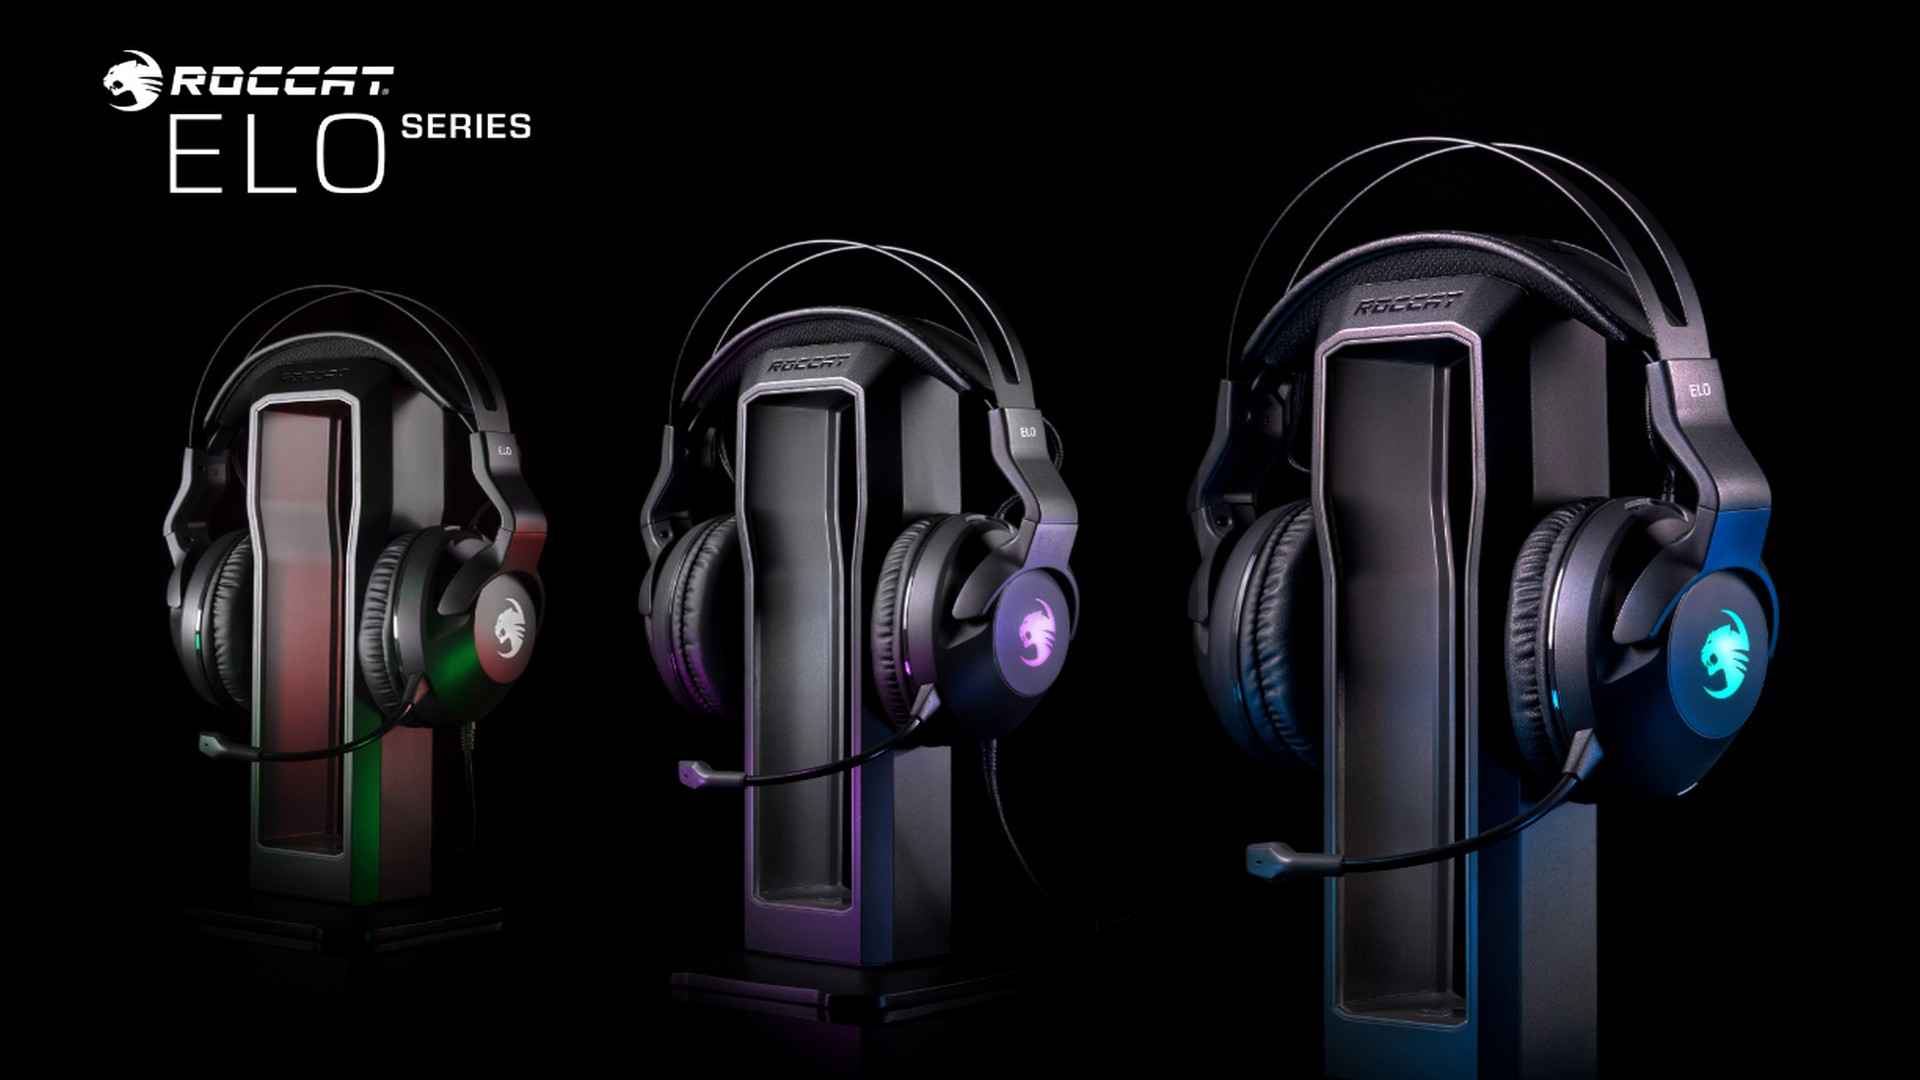 Roccat Reveals The Elo Series Of PC Gaming Headset